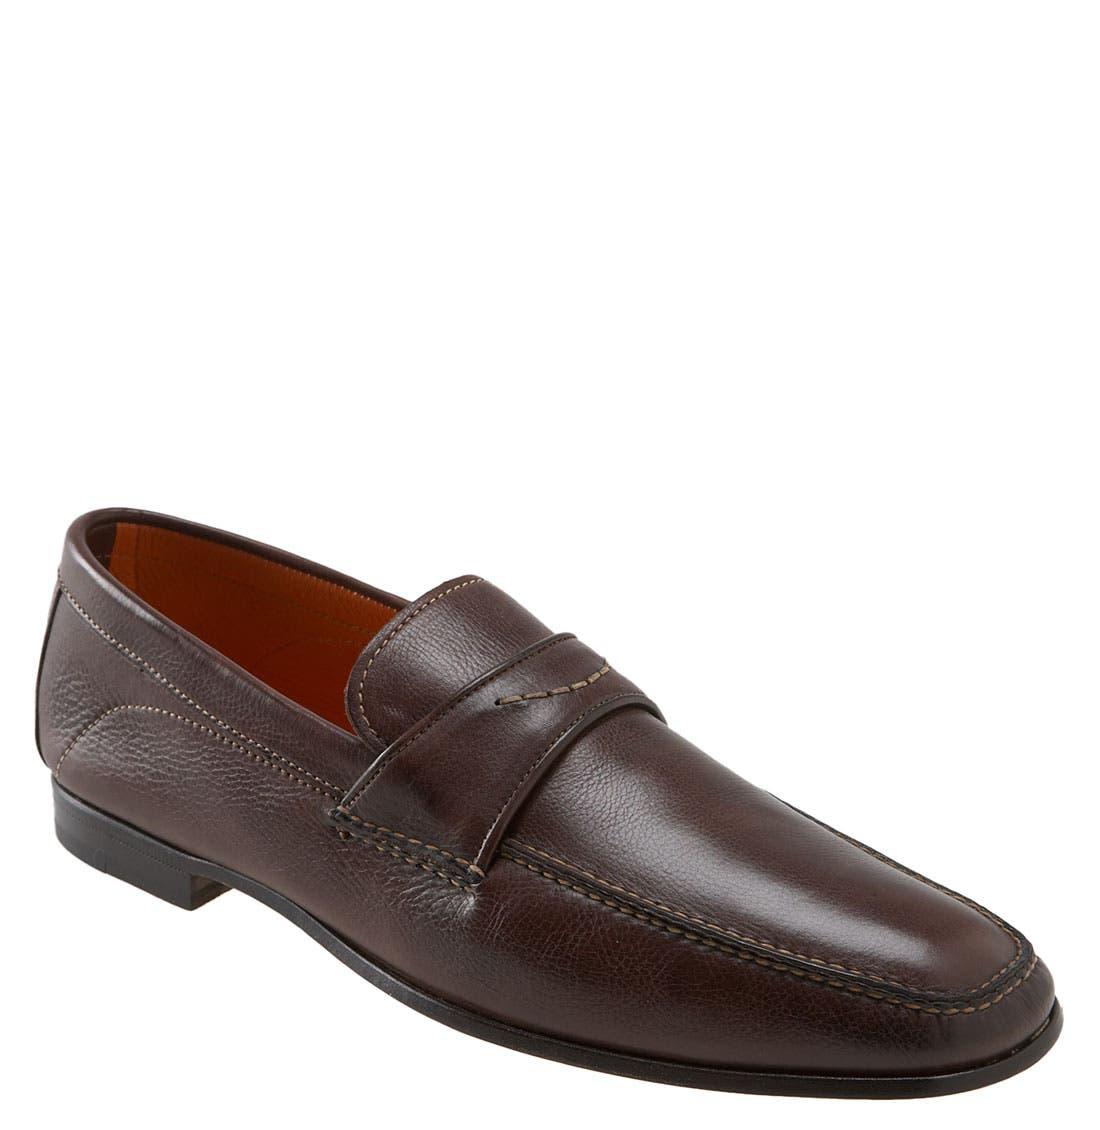 Alternate Image 1 Selected - Santoni 'Jericho' Slip-On